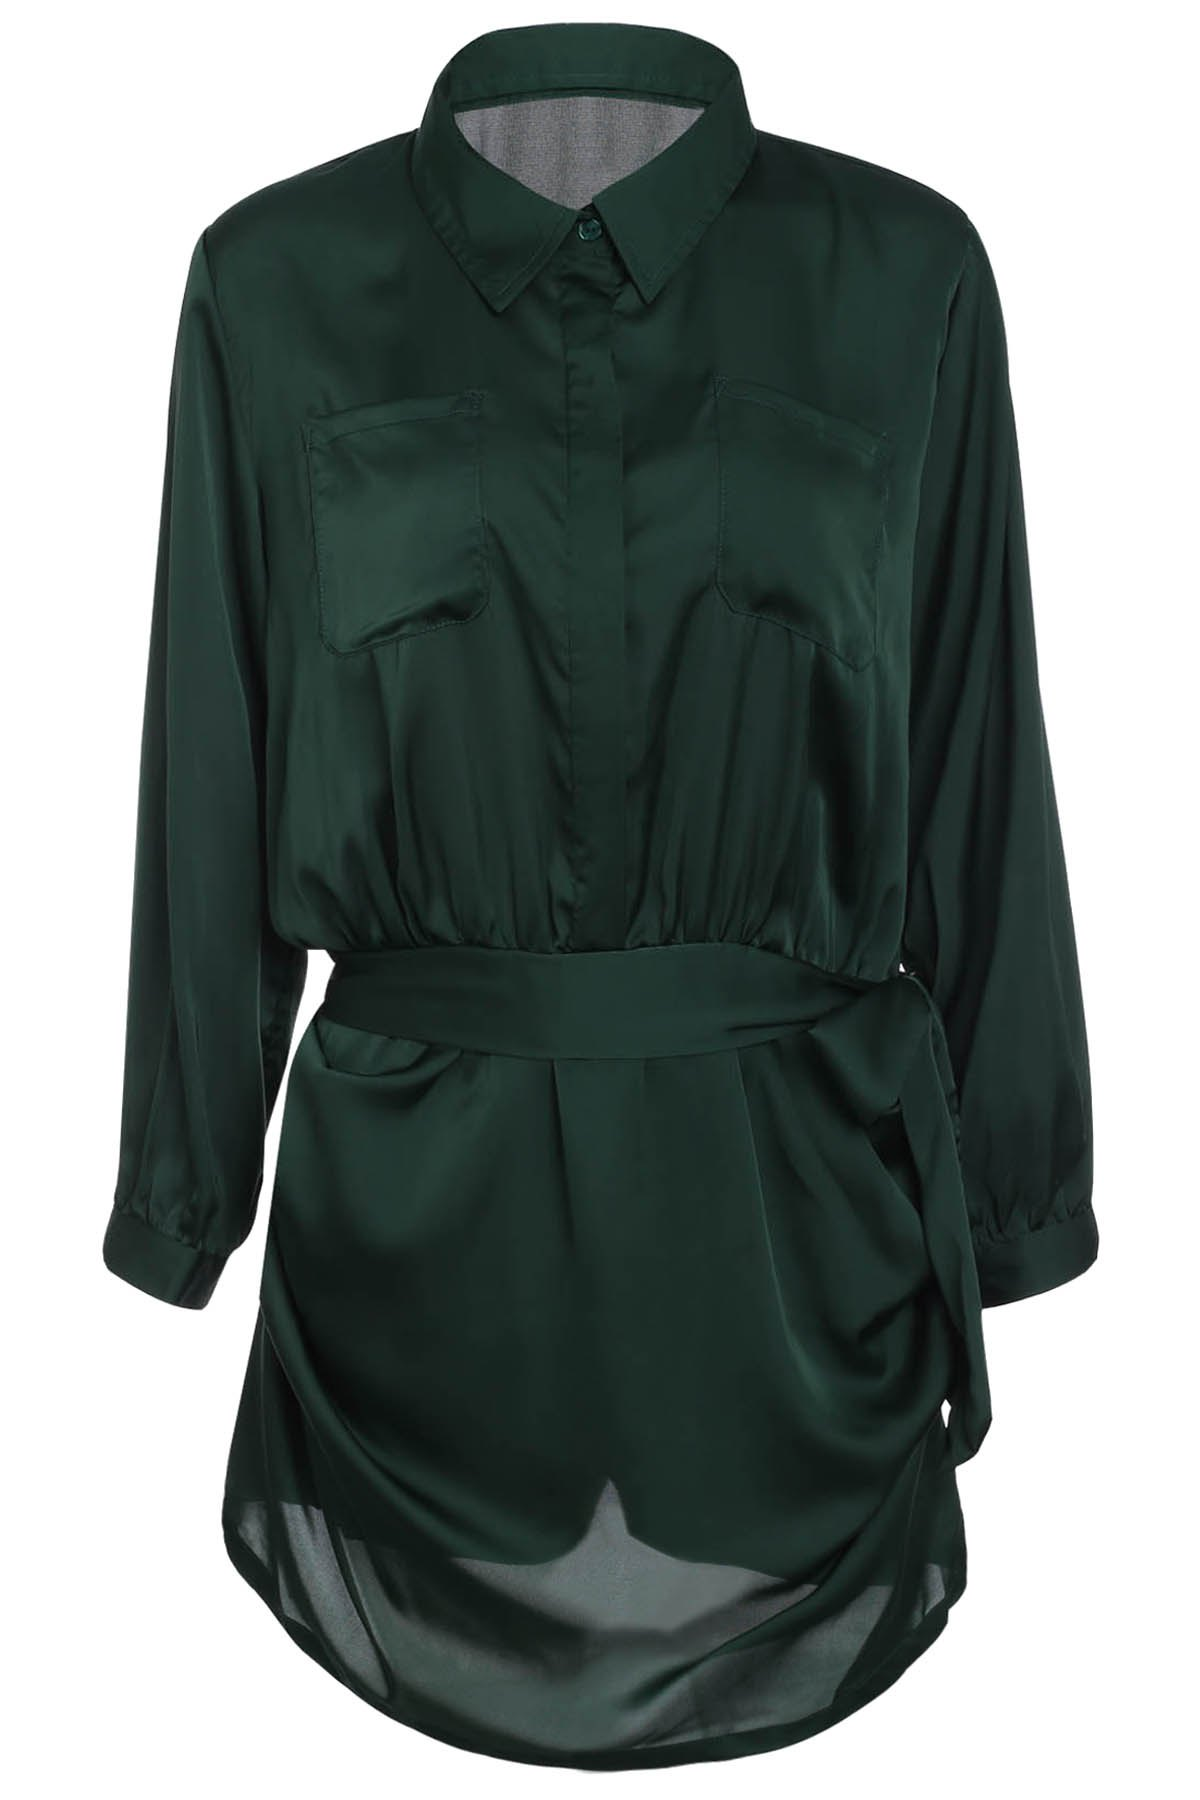 Brief Women's Polo Collar Army Green Long Sleeve Romper - ARMY GREEN S